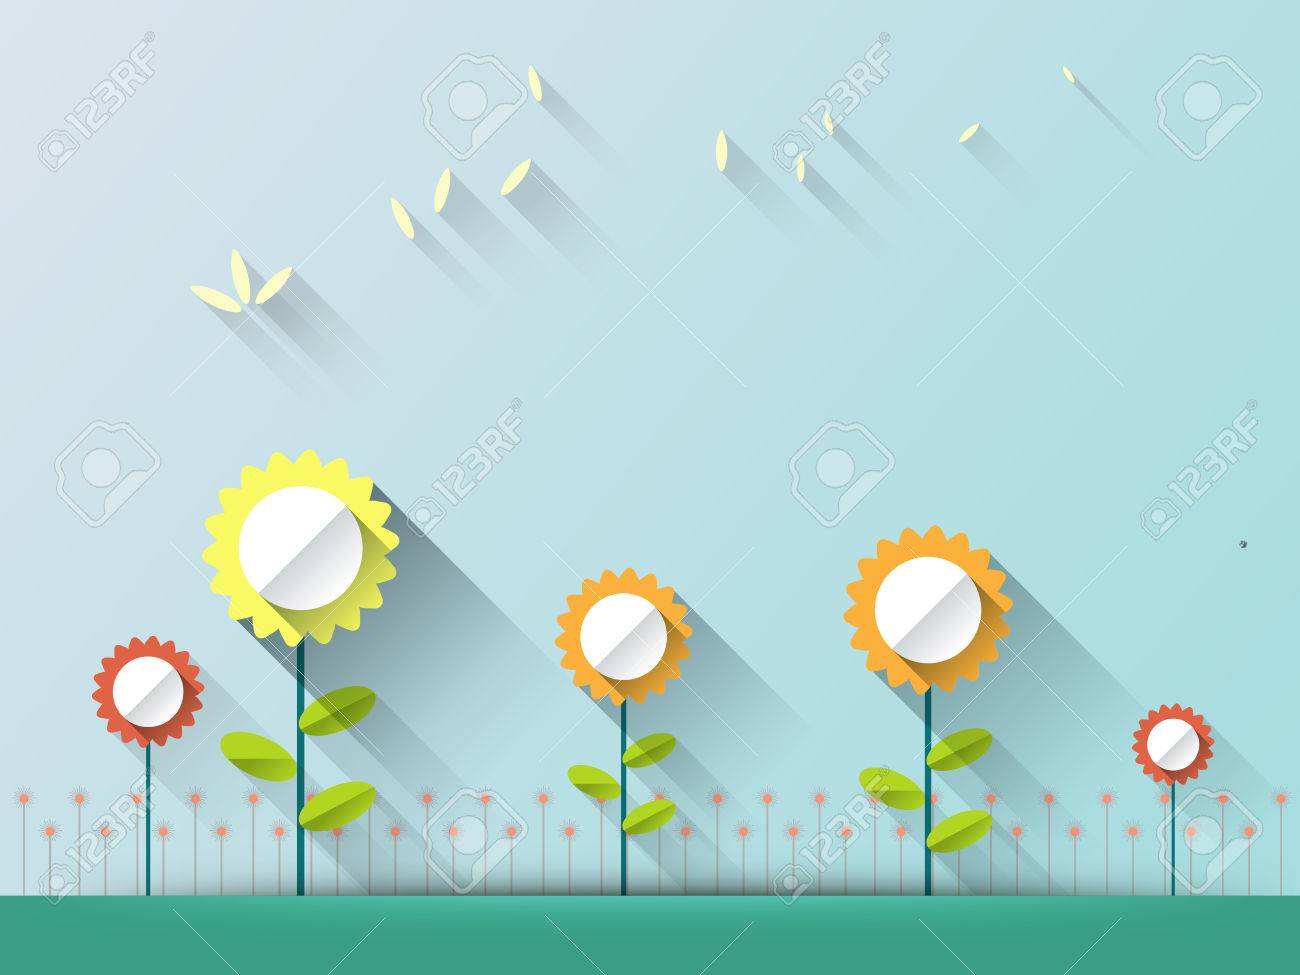 Abstract spring background with paper flowers flat design style abstract spring background with paper flowers flat design style on light blue background with space mightylinksfo